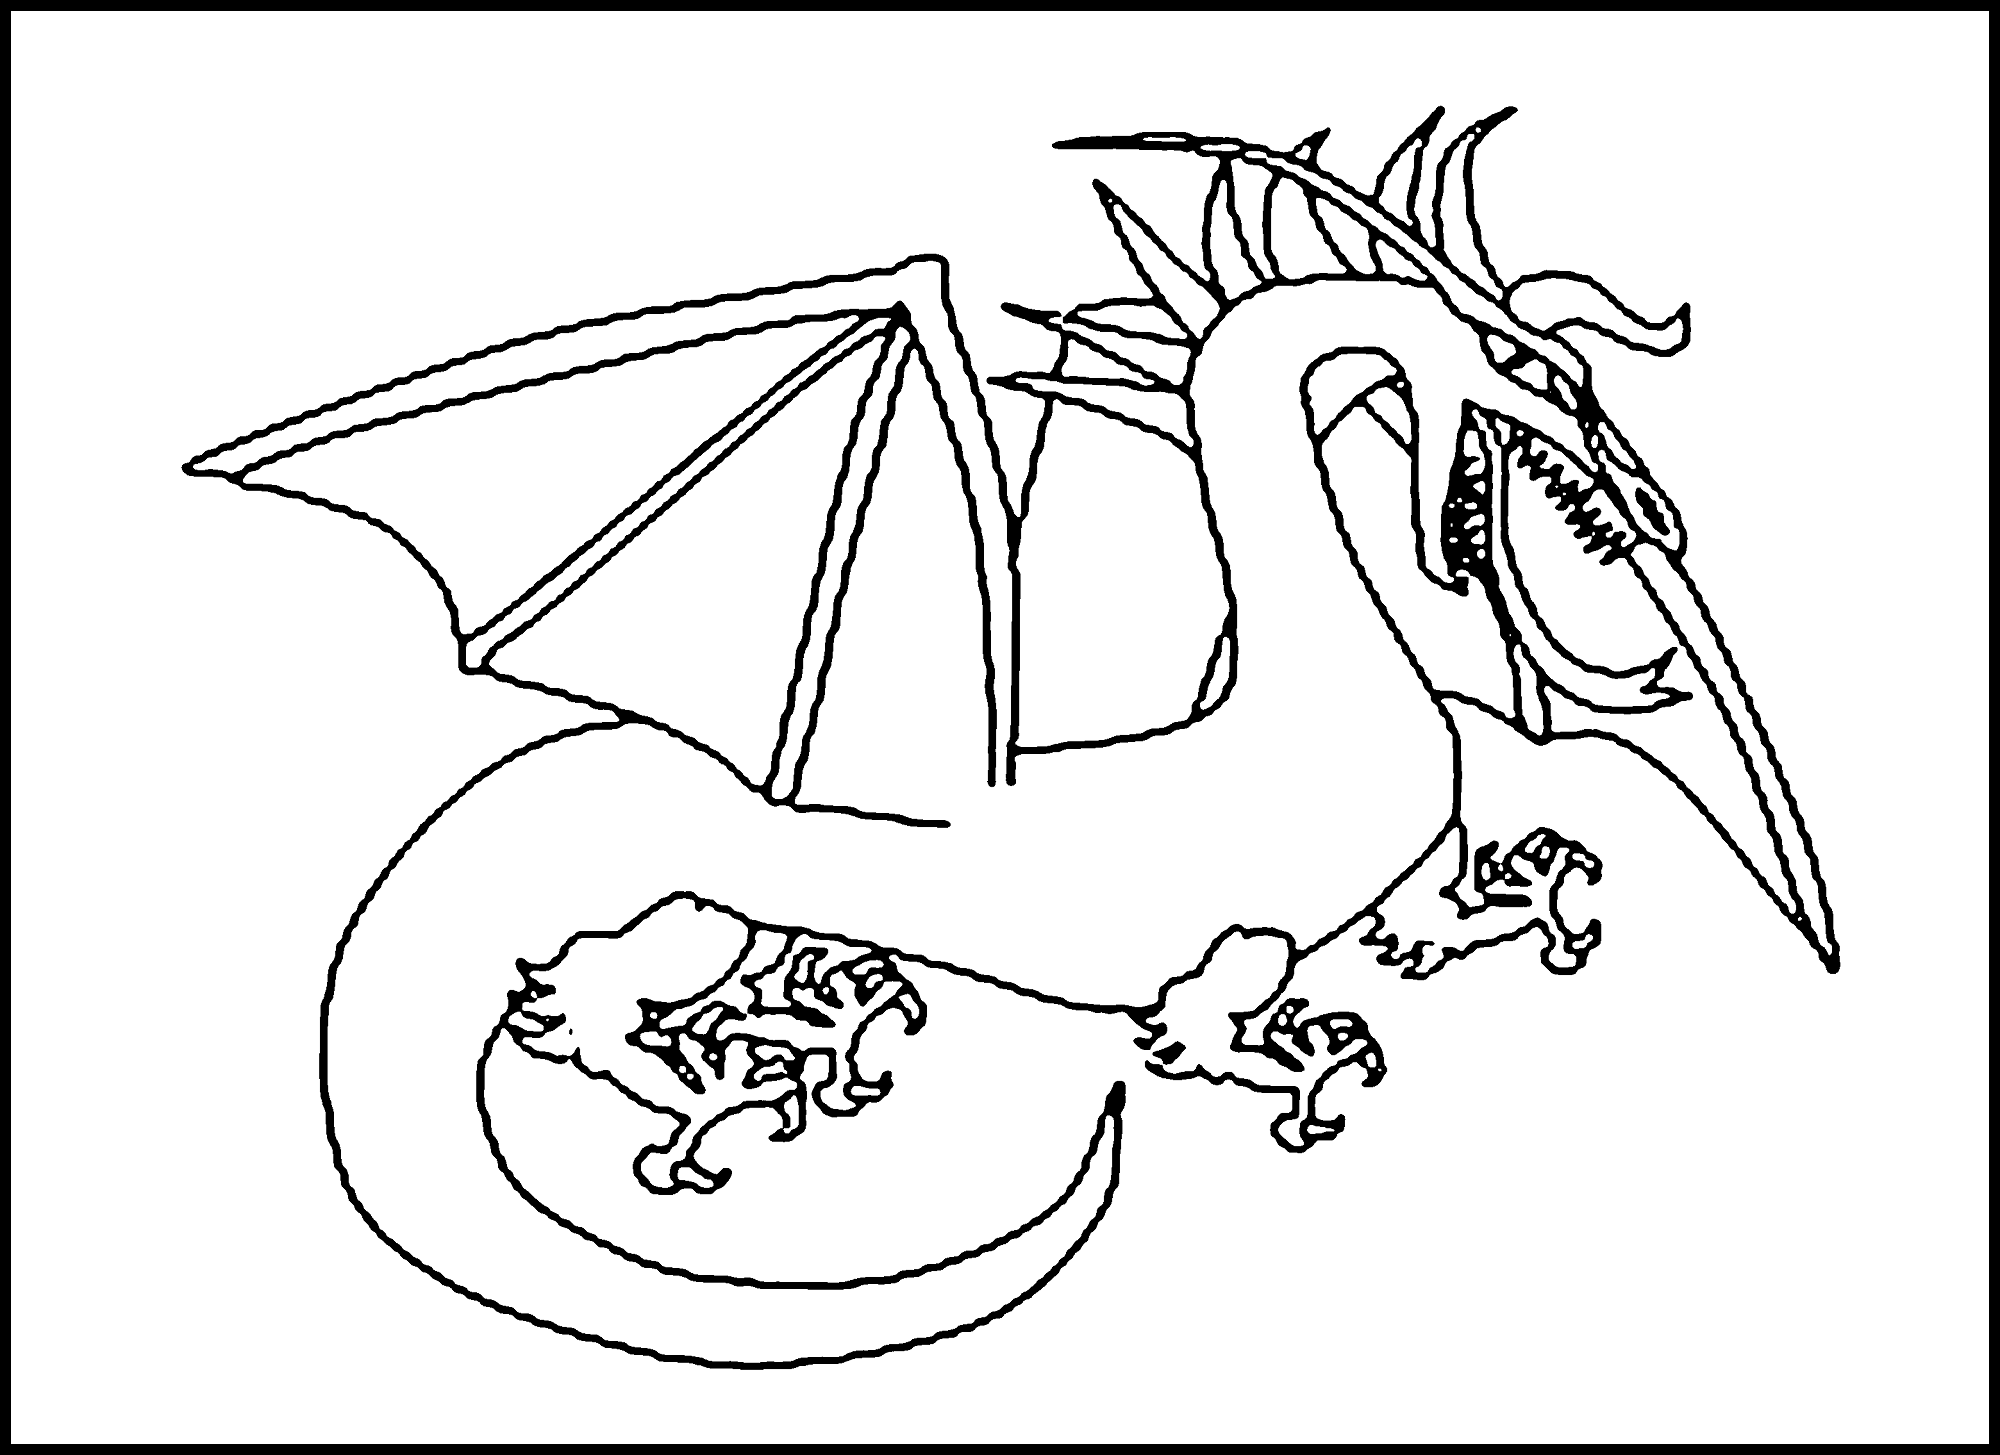 Dragon Coloring Pages Printable | Activity Shelter